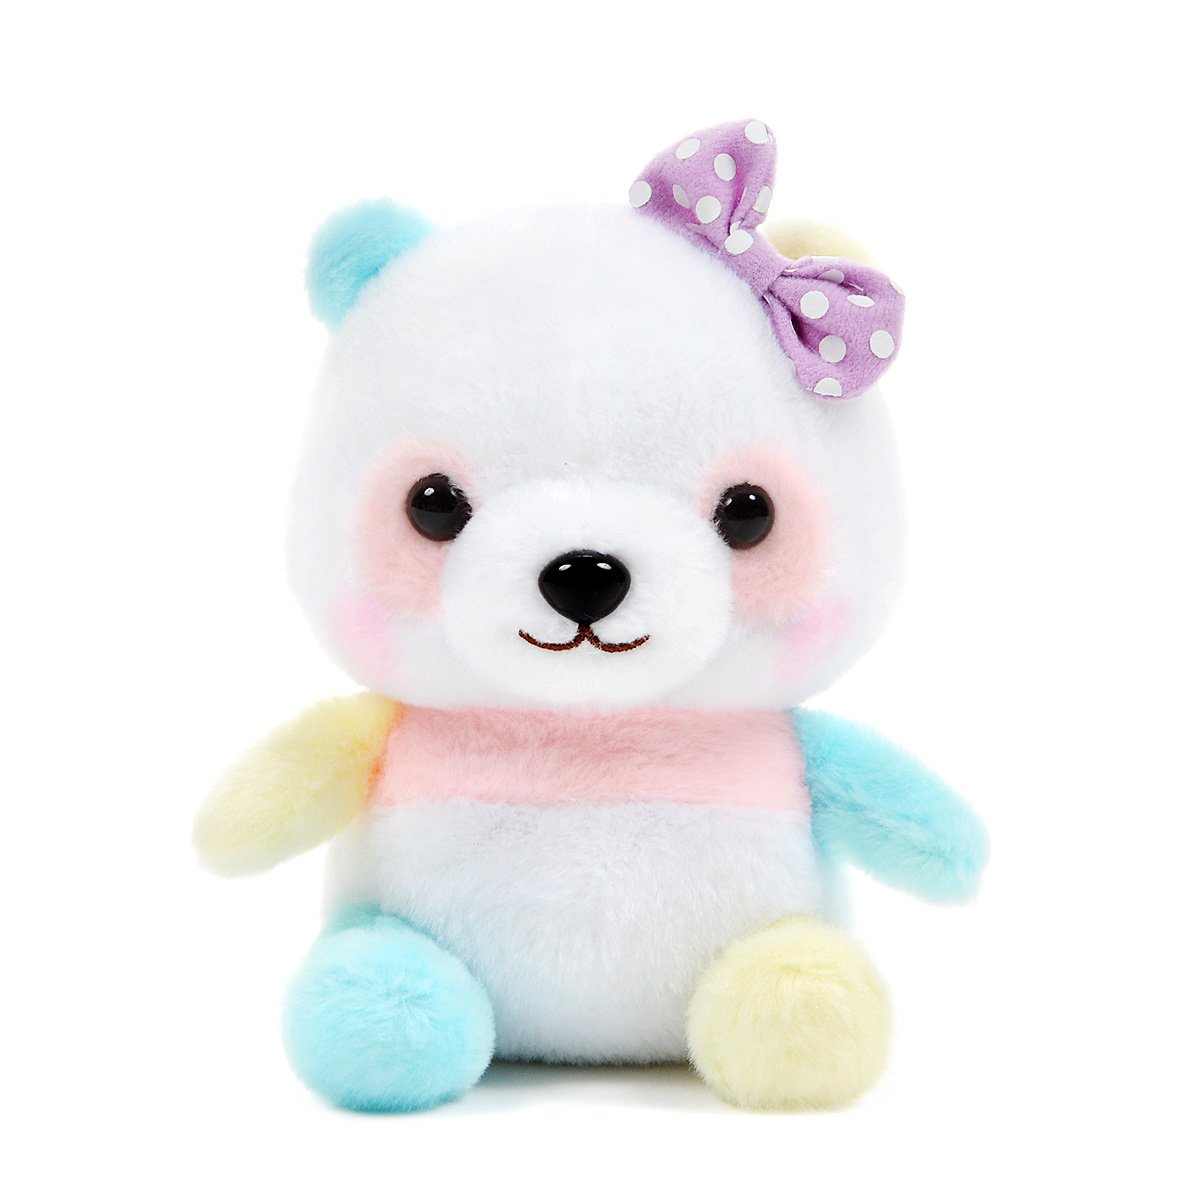 Plush Panda, Amuse, Honwaka Panda Baby, Yume Mix, White Mix, 6 Inches